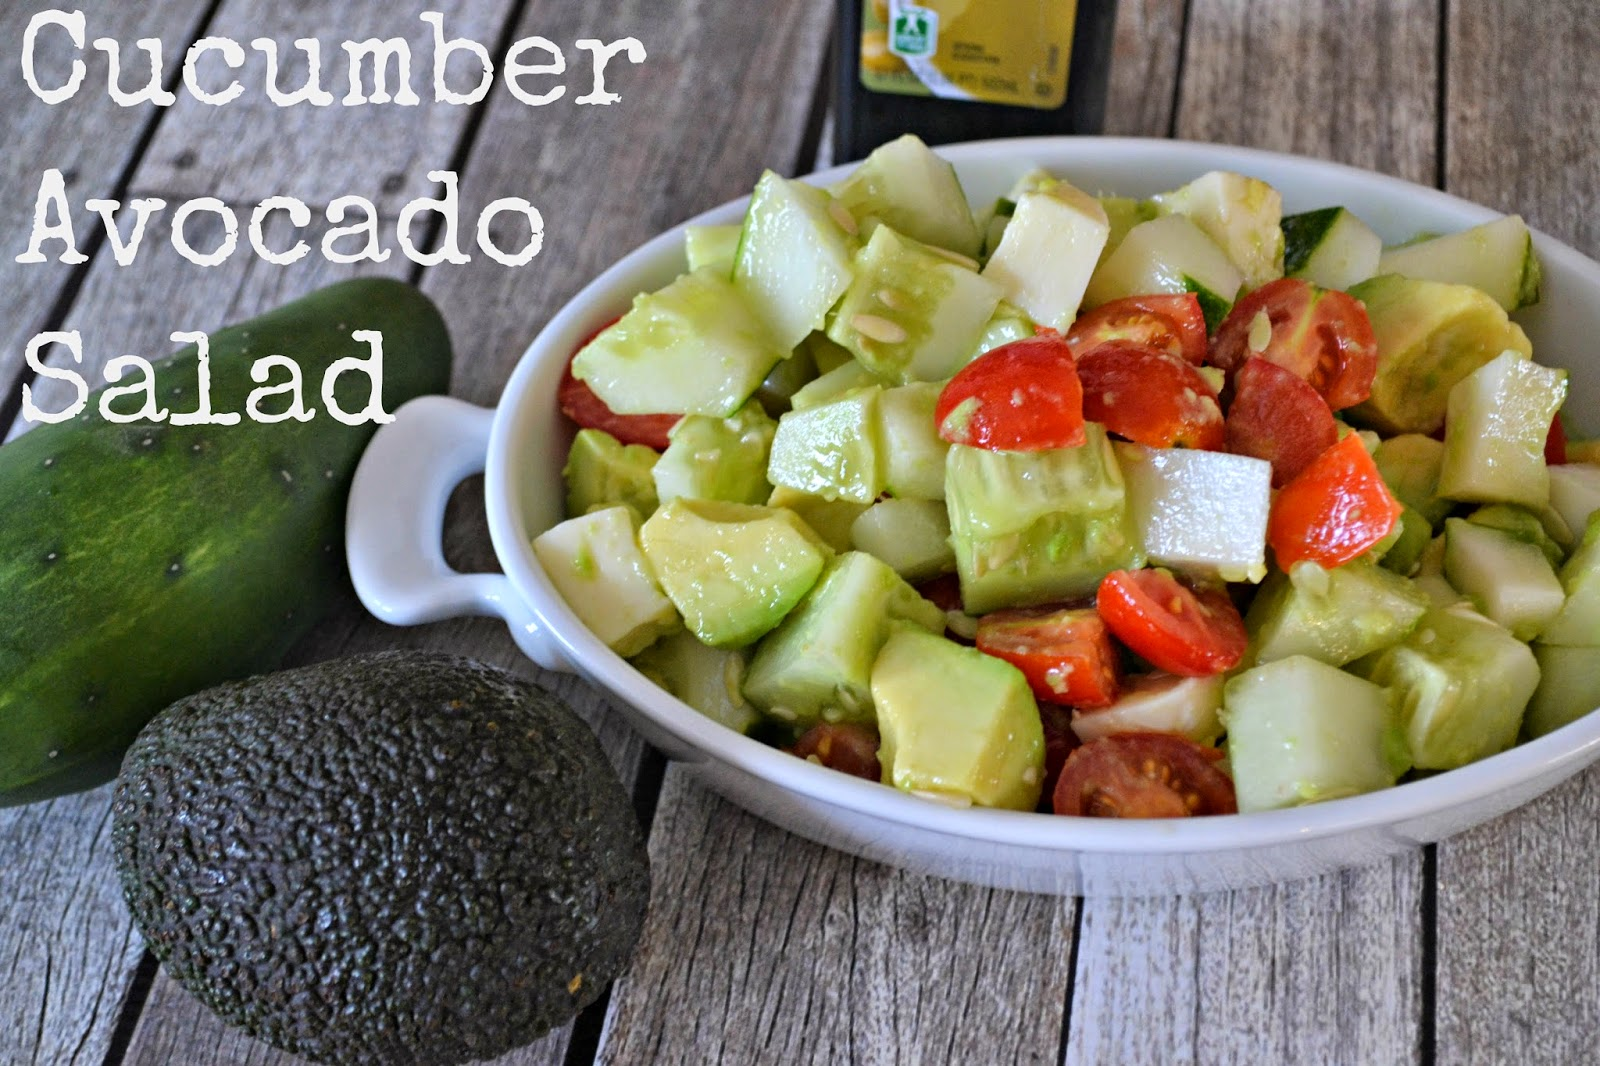 Cucumber Avocado Salad recipes. Salad Recipes with Cucumbers. salad ...